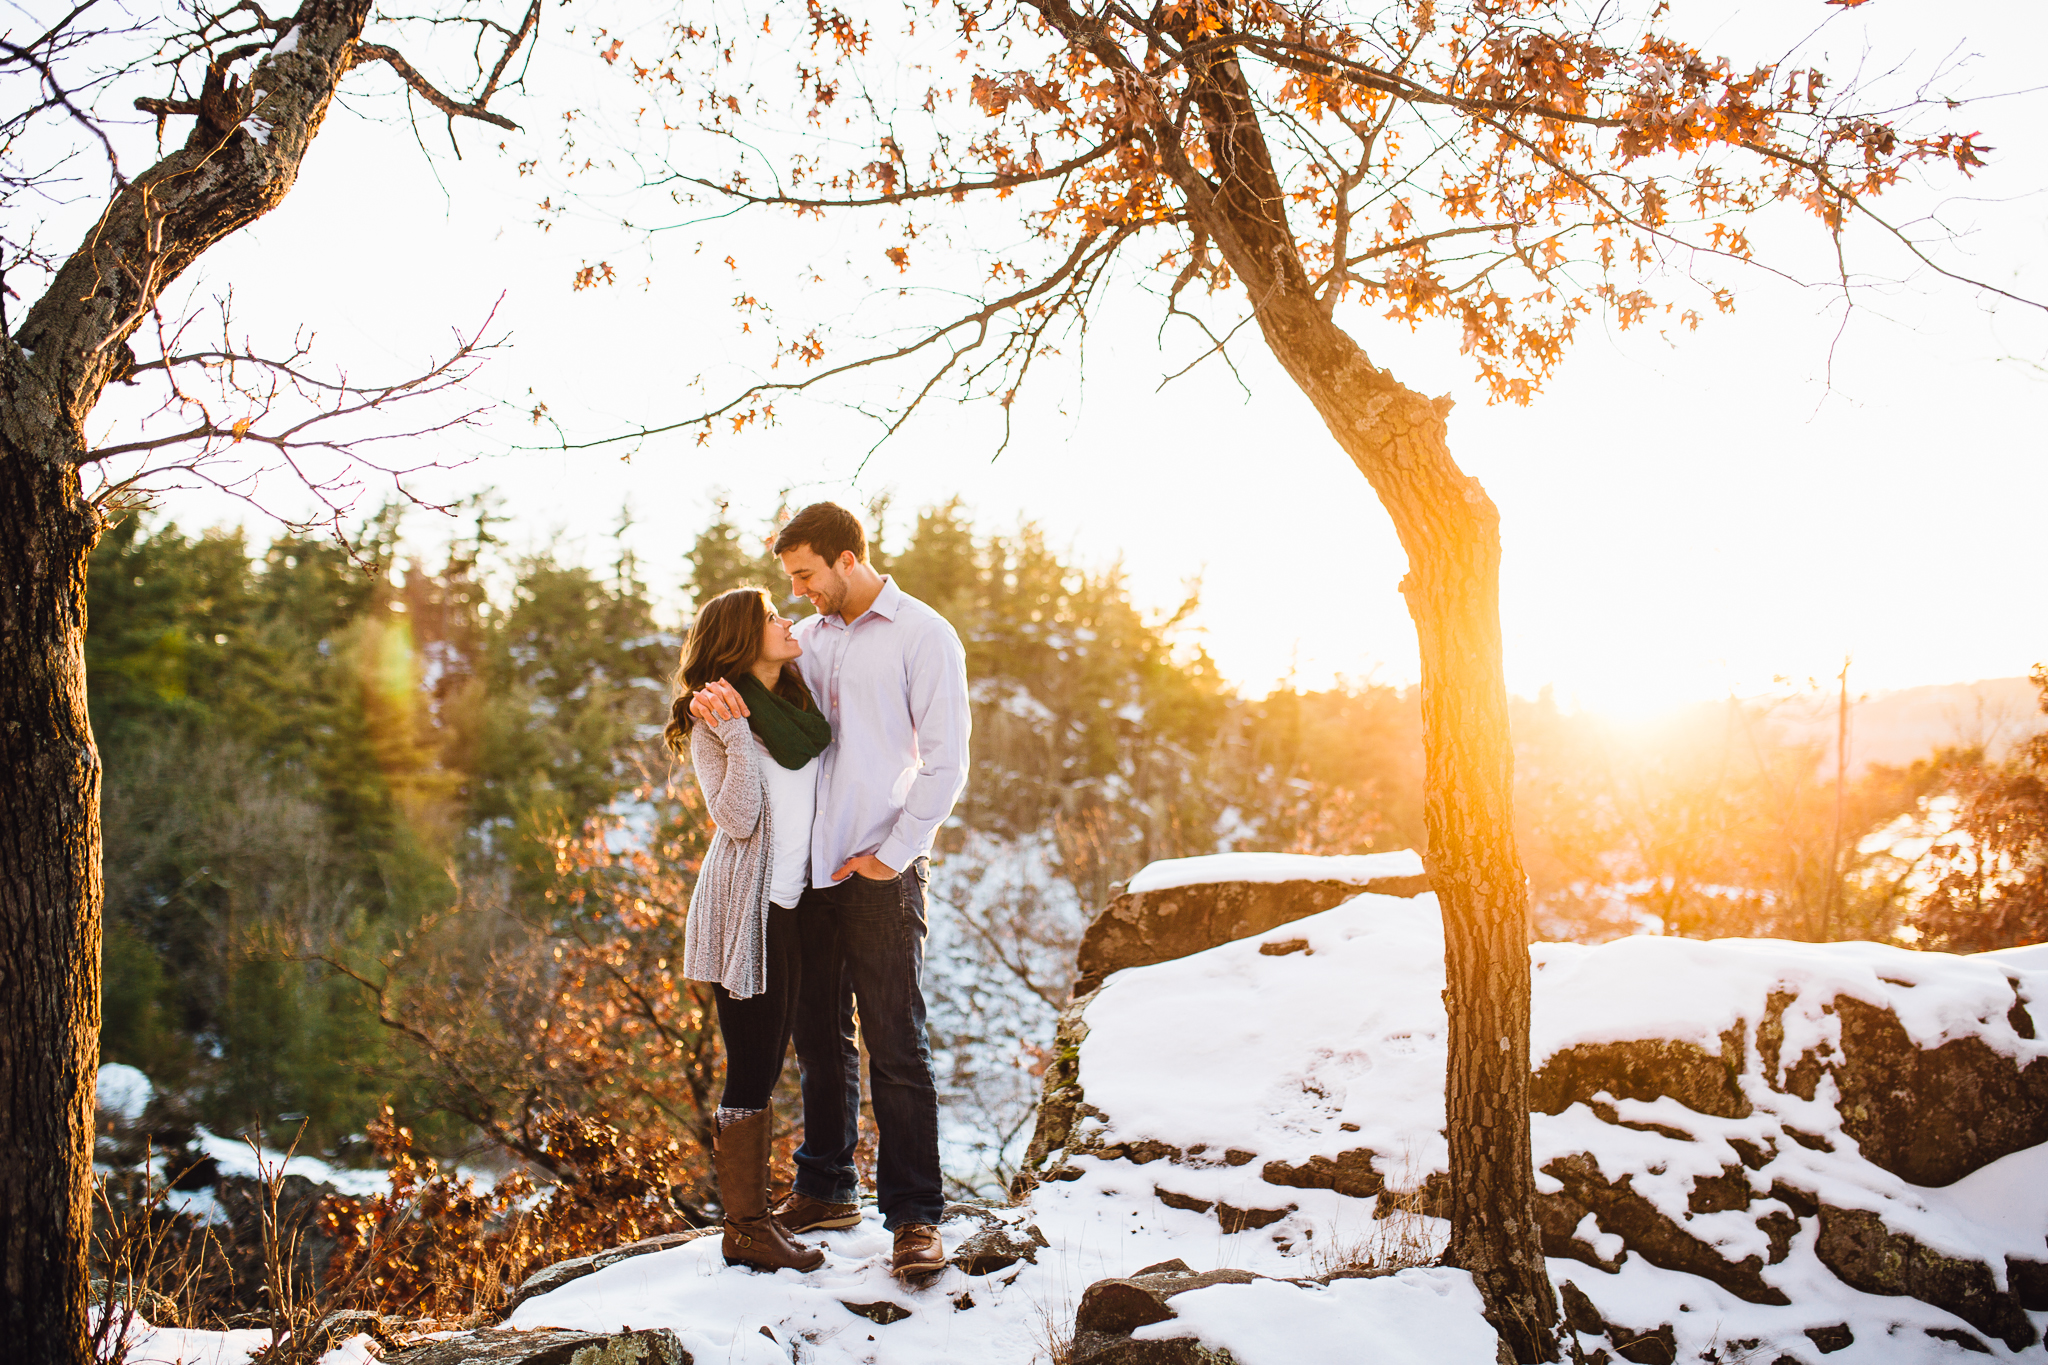 st-cloud-minnesota-winter-engagement-taylors-falls-interstate-state-park-wedding-photographer-2649.jpg